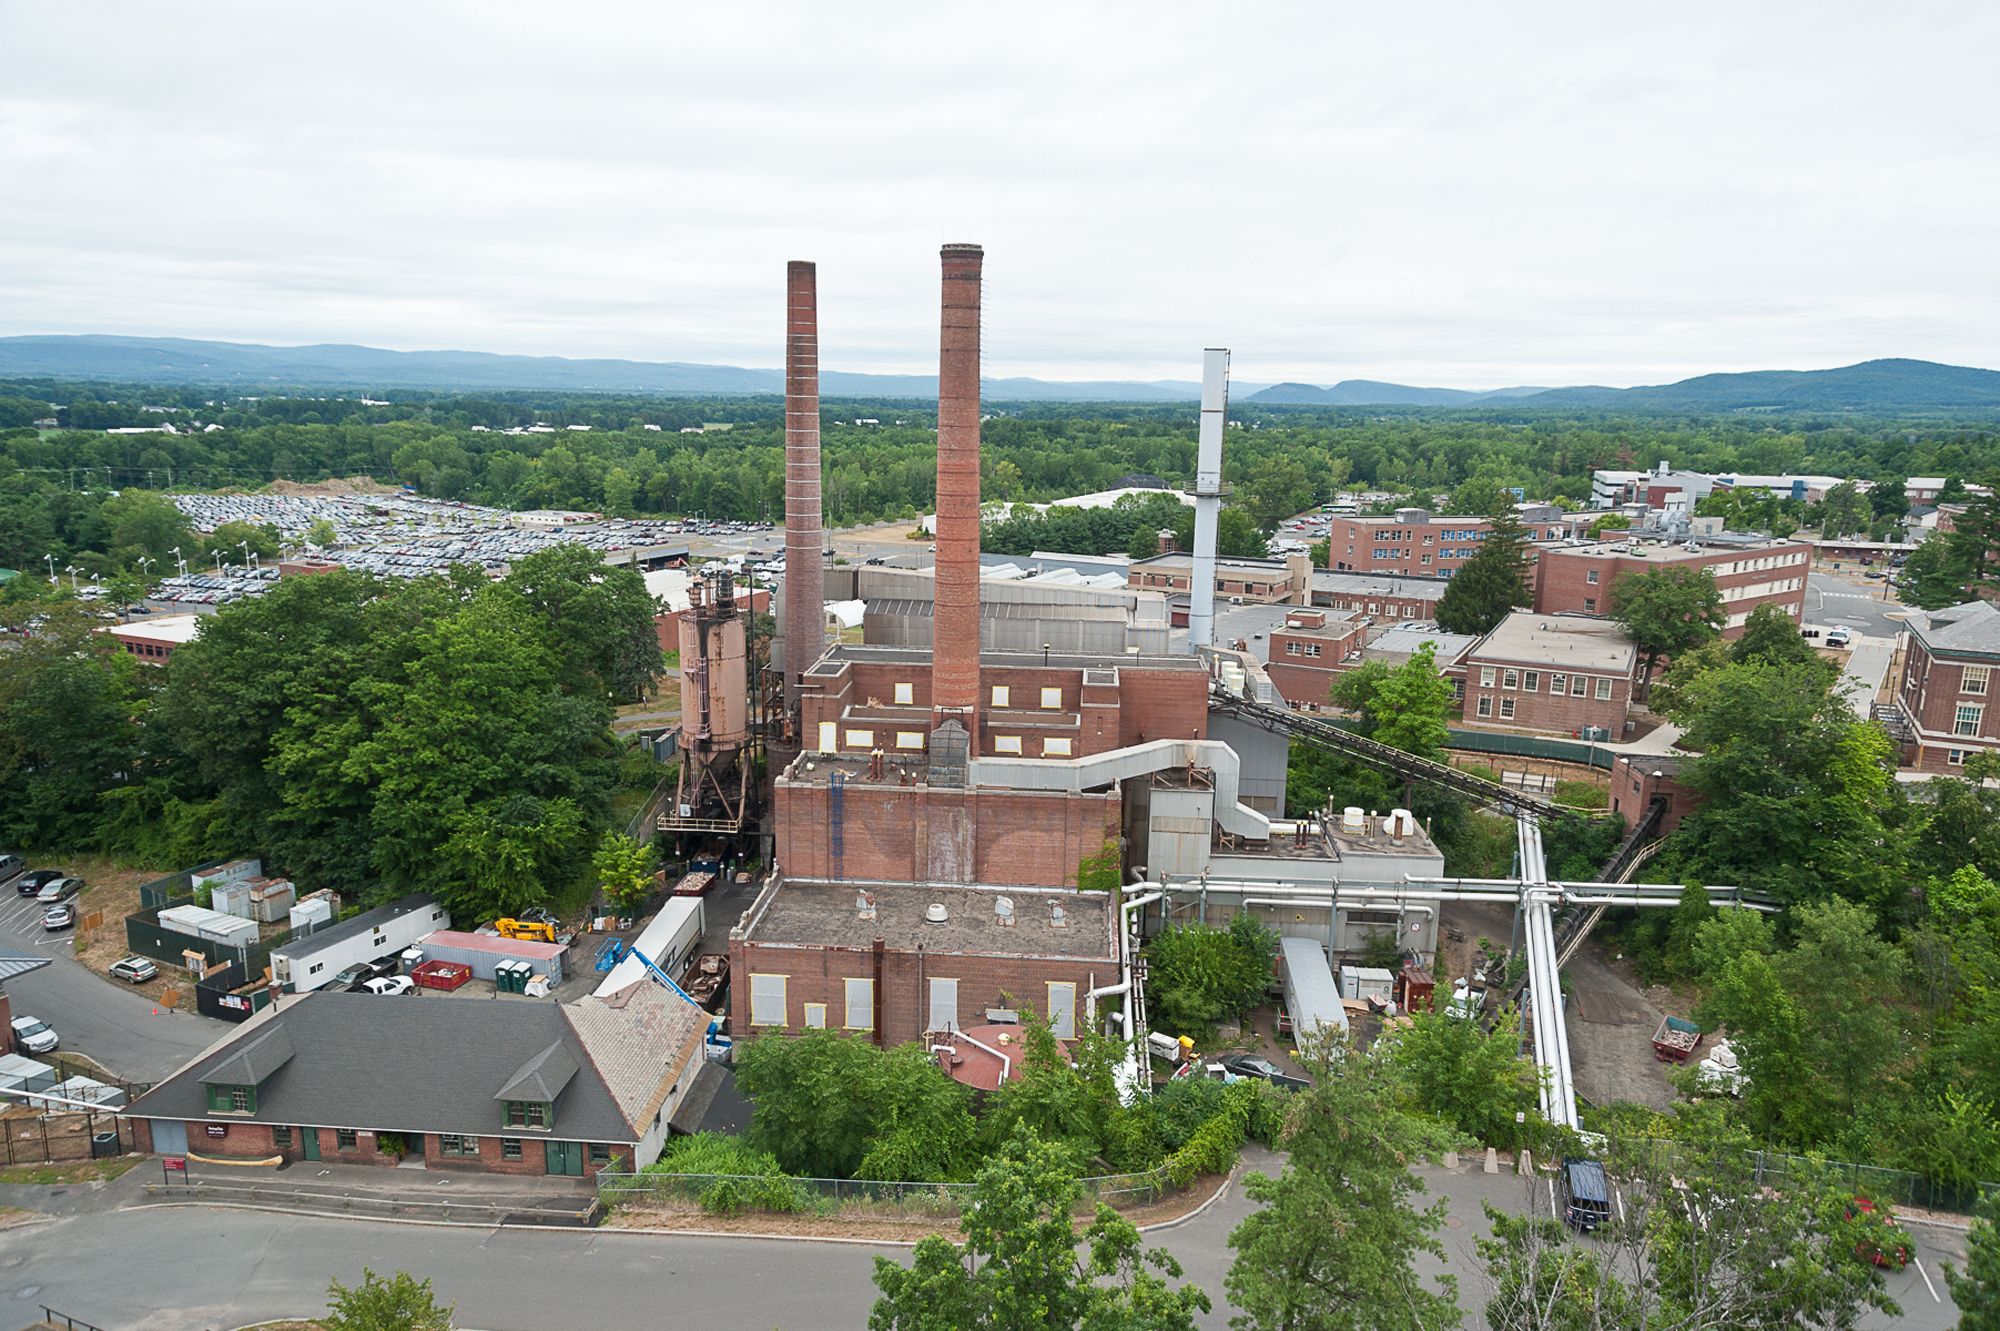 aerial and Progress photography by John Giammatteo of the UMass plant demolition by Whiting Turner Construction